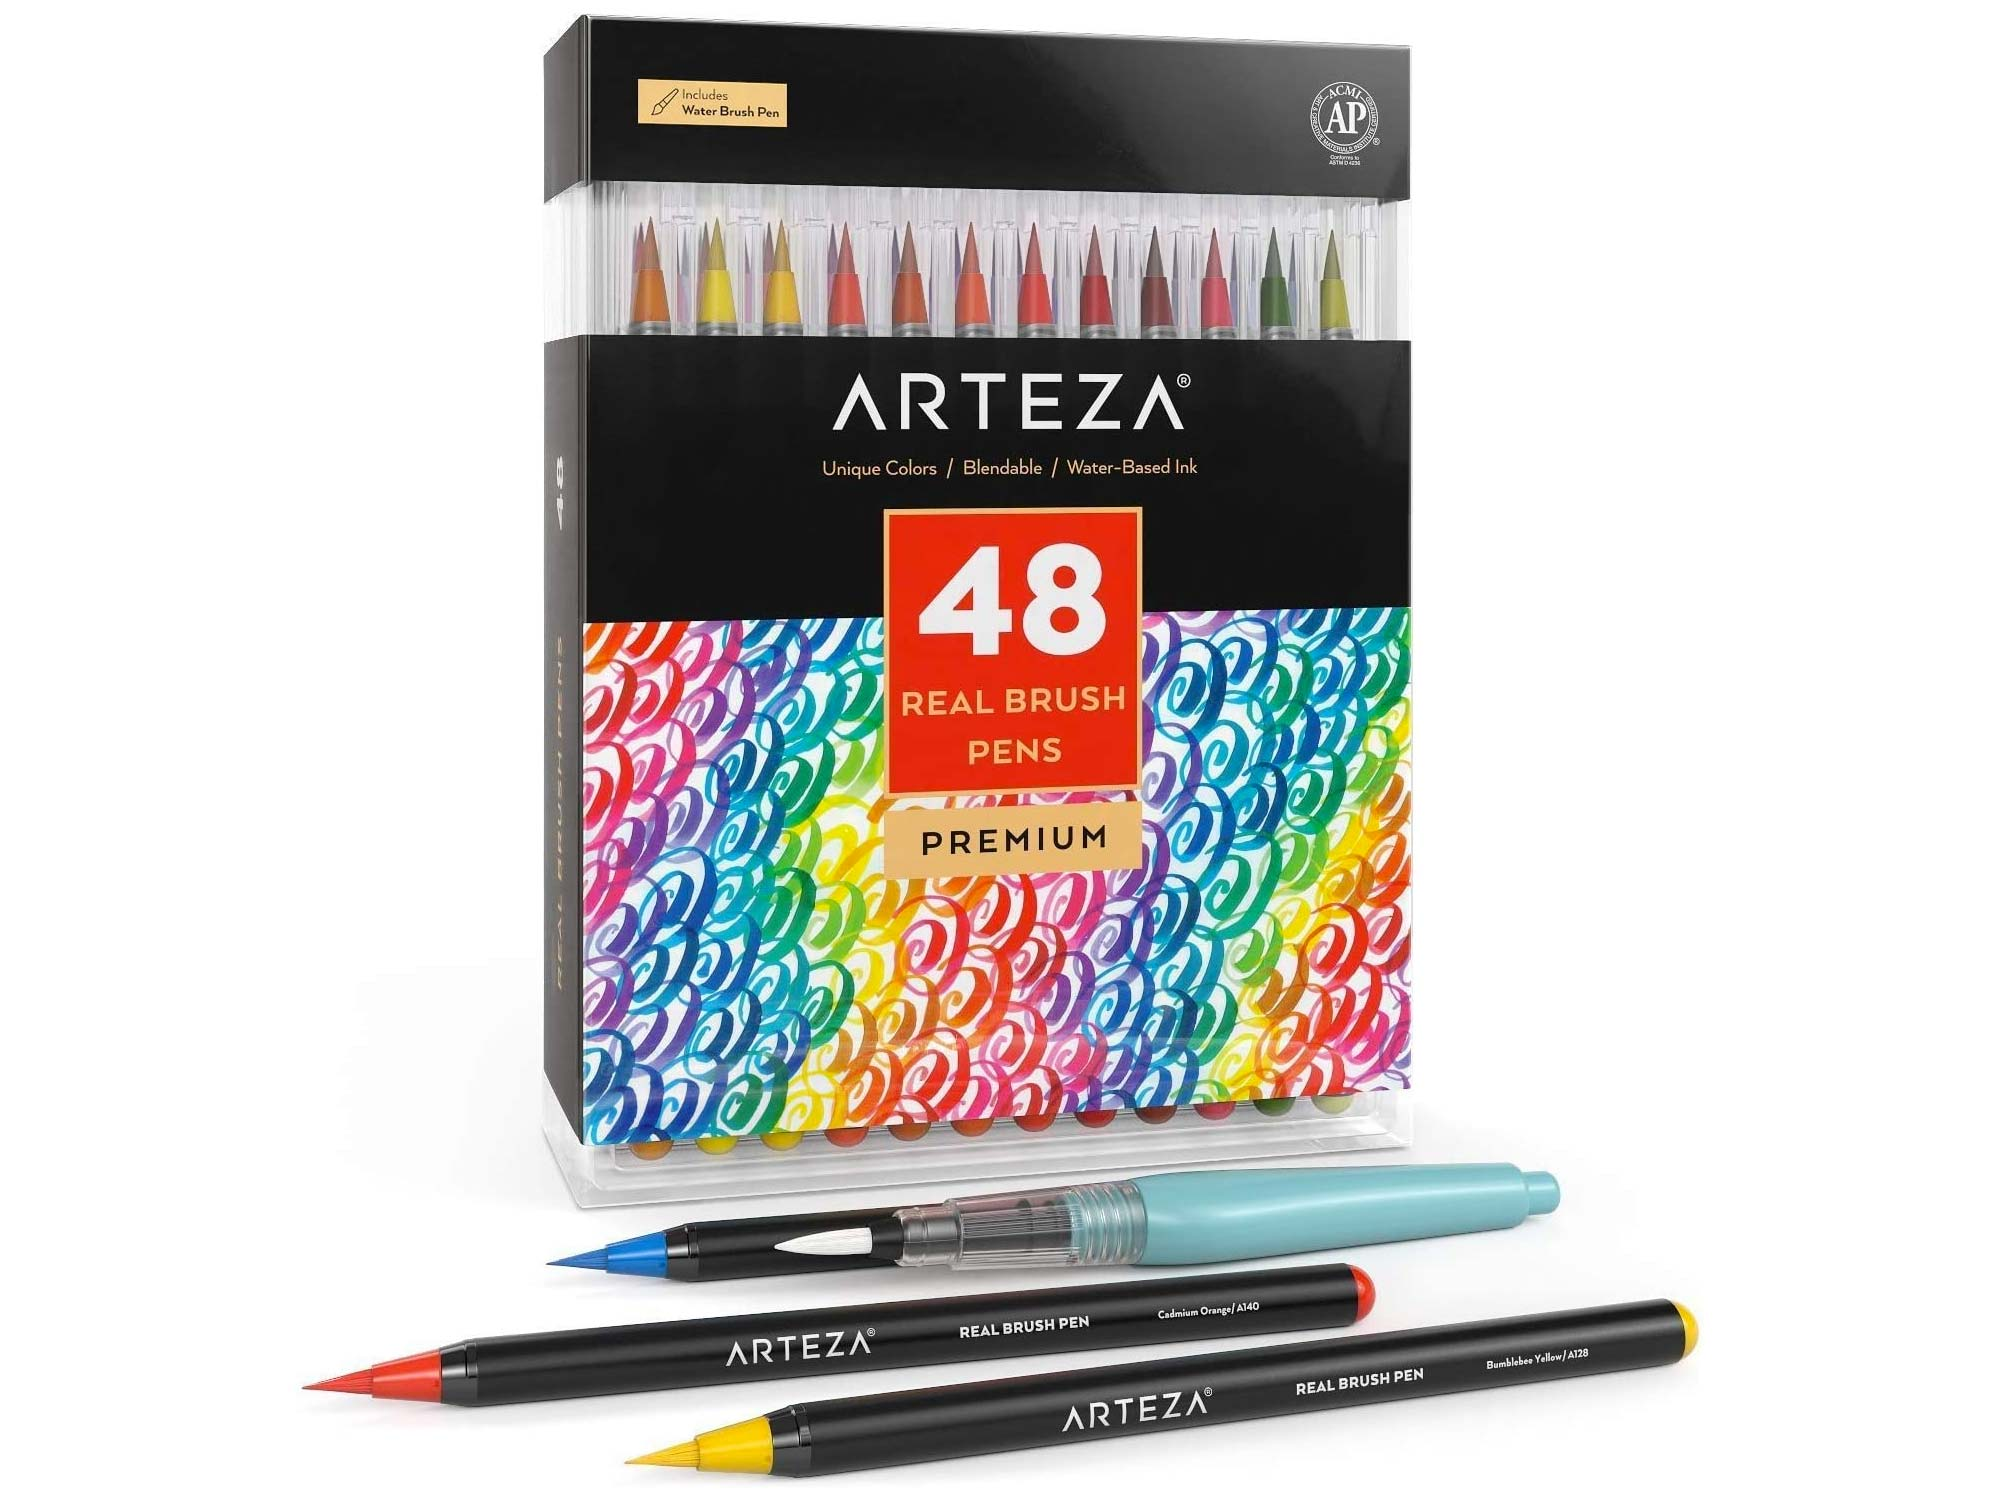 Arteza Real Brush Pens, 48 Colors for Watercolor Painting with Flexible Nylon Brush Tips